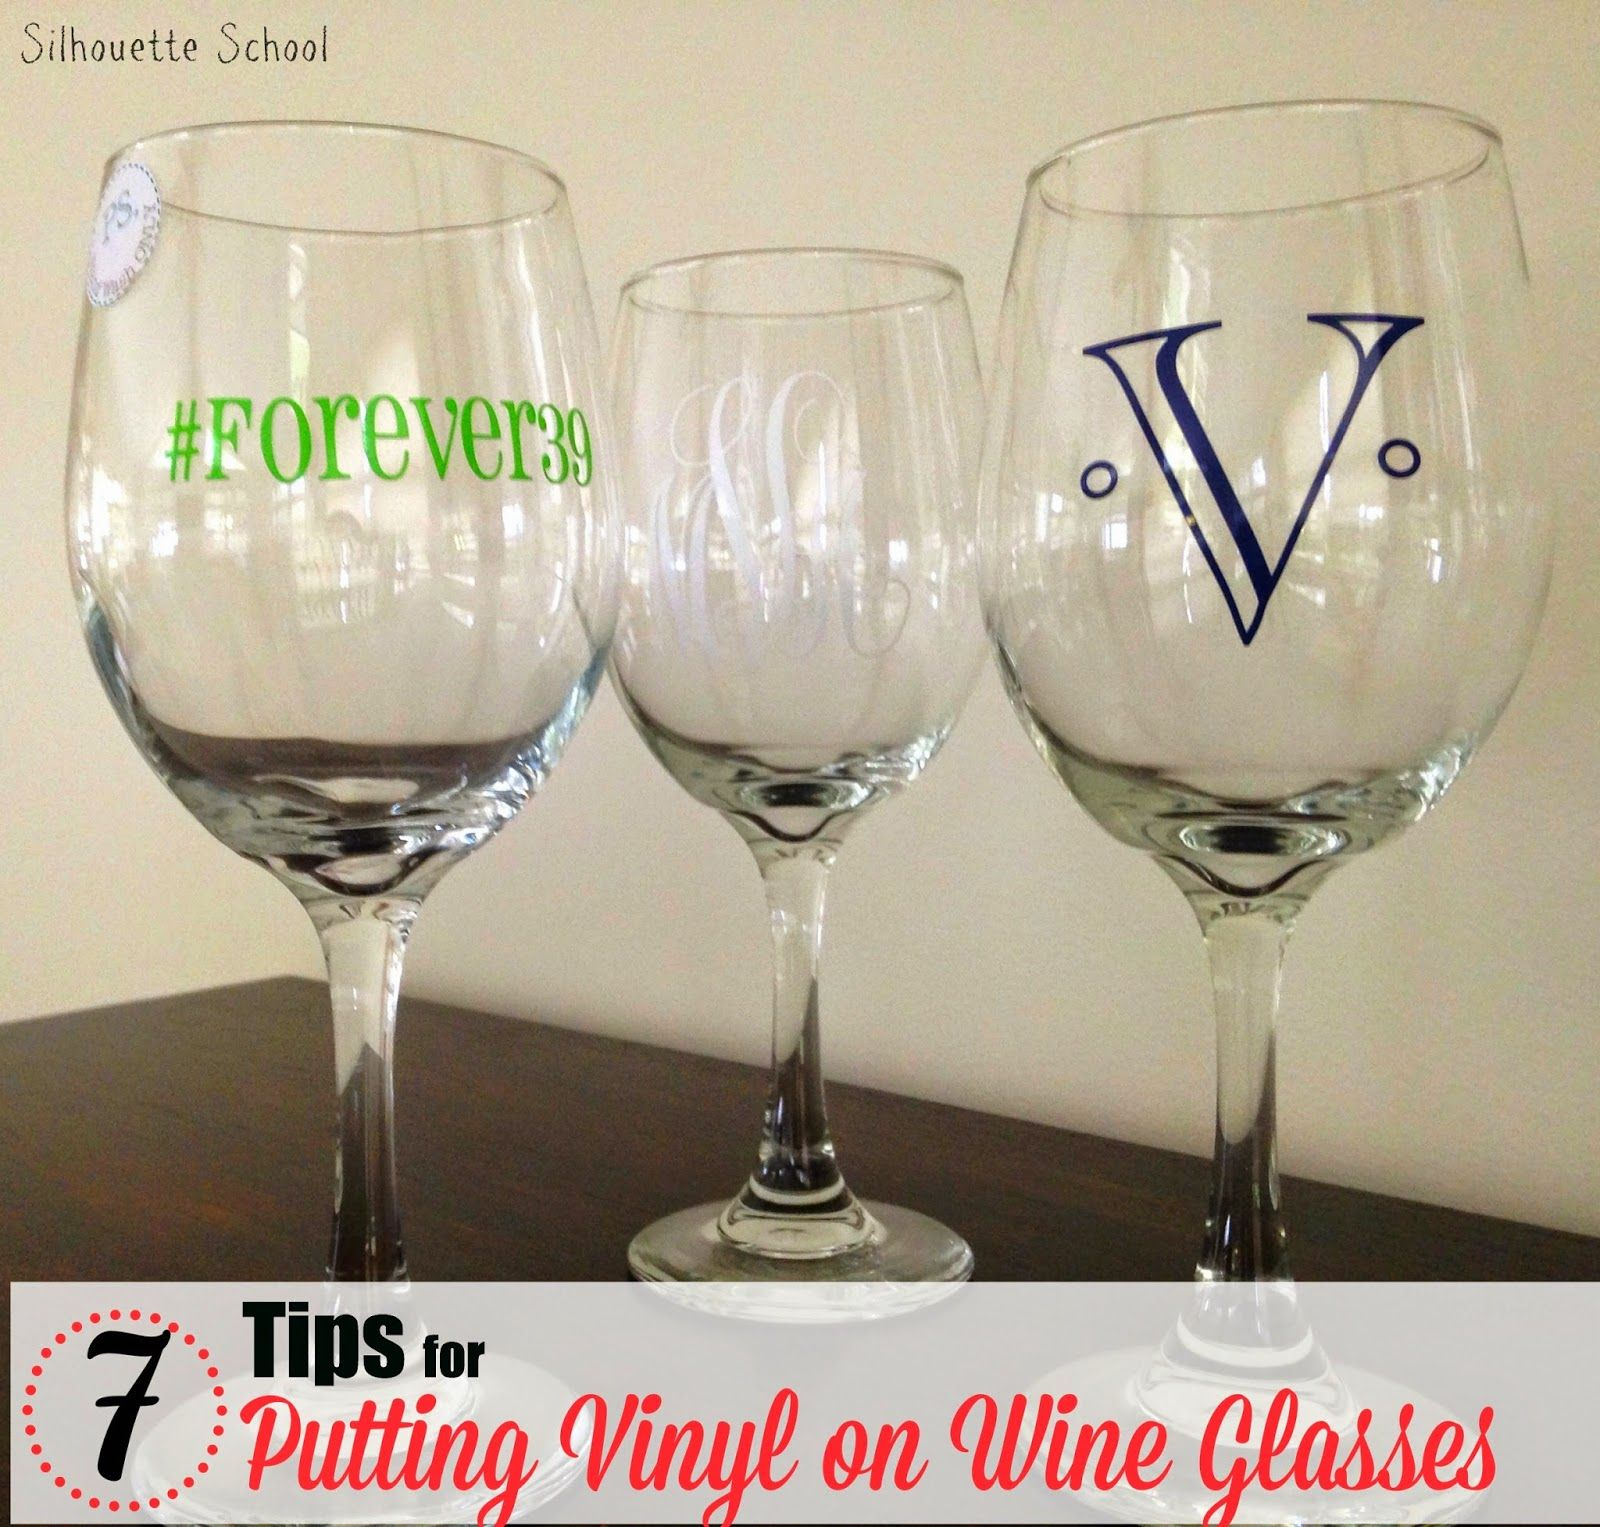 Putting Vinyl On Wine Glasses Tips For Success Silhouette - Wine glass custom vinyl stickers